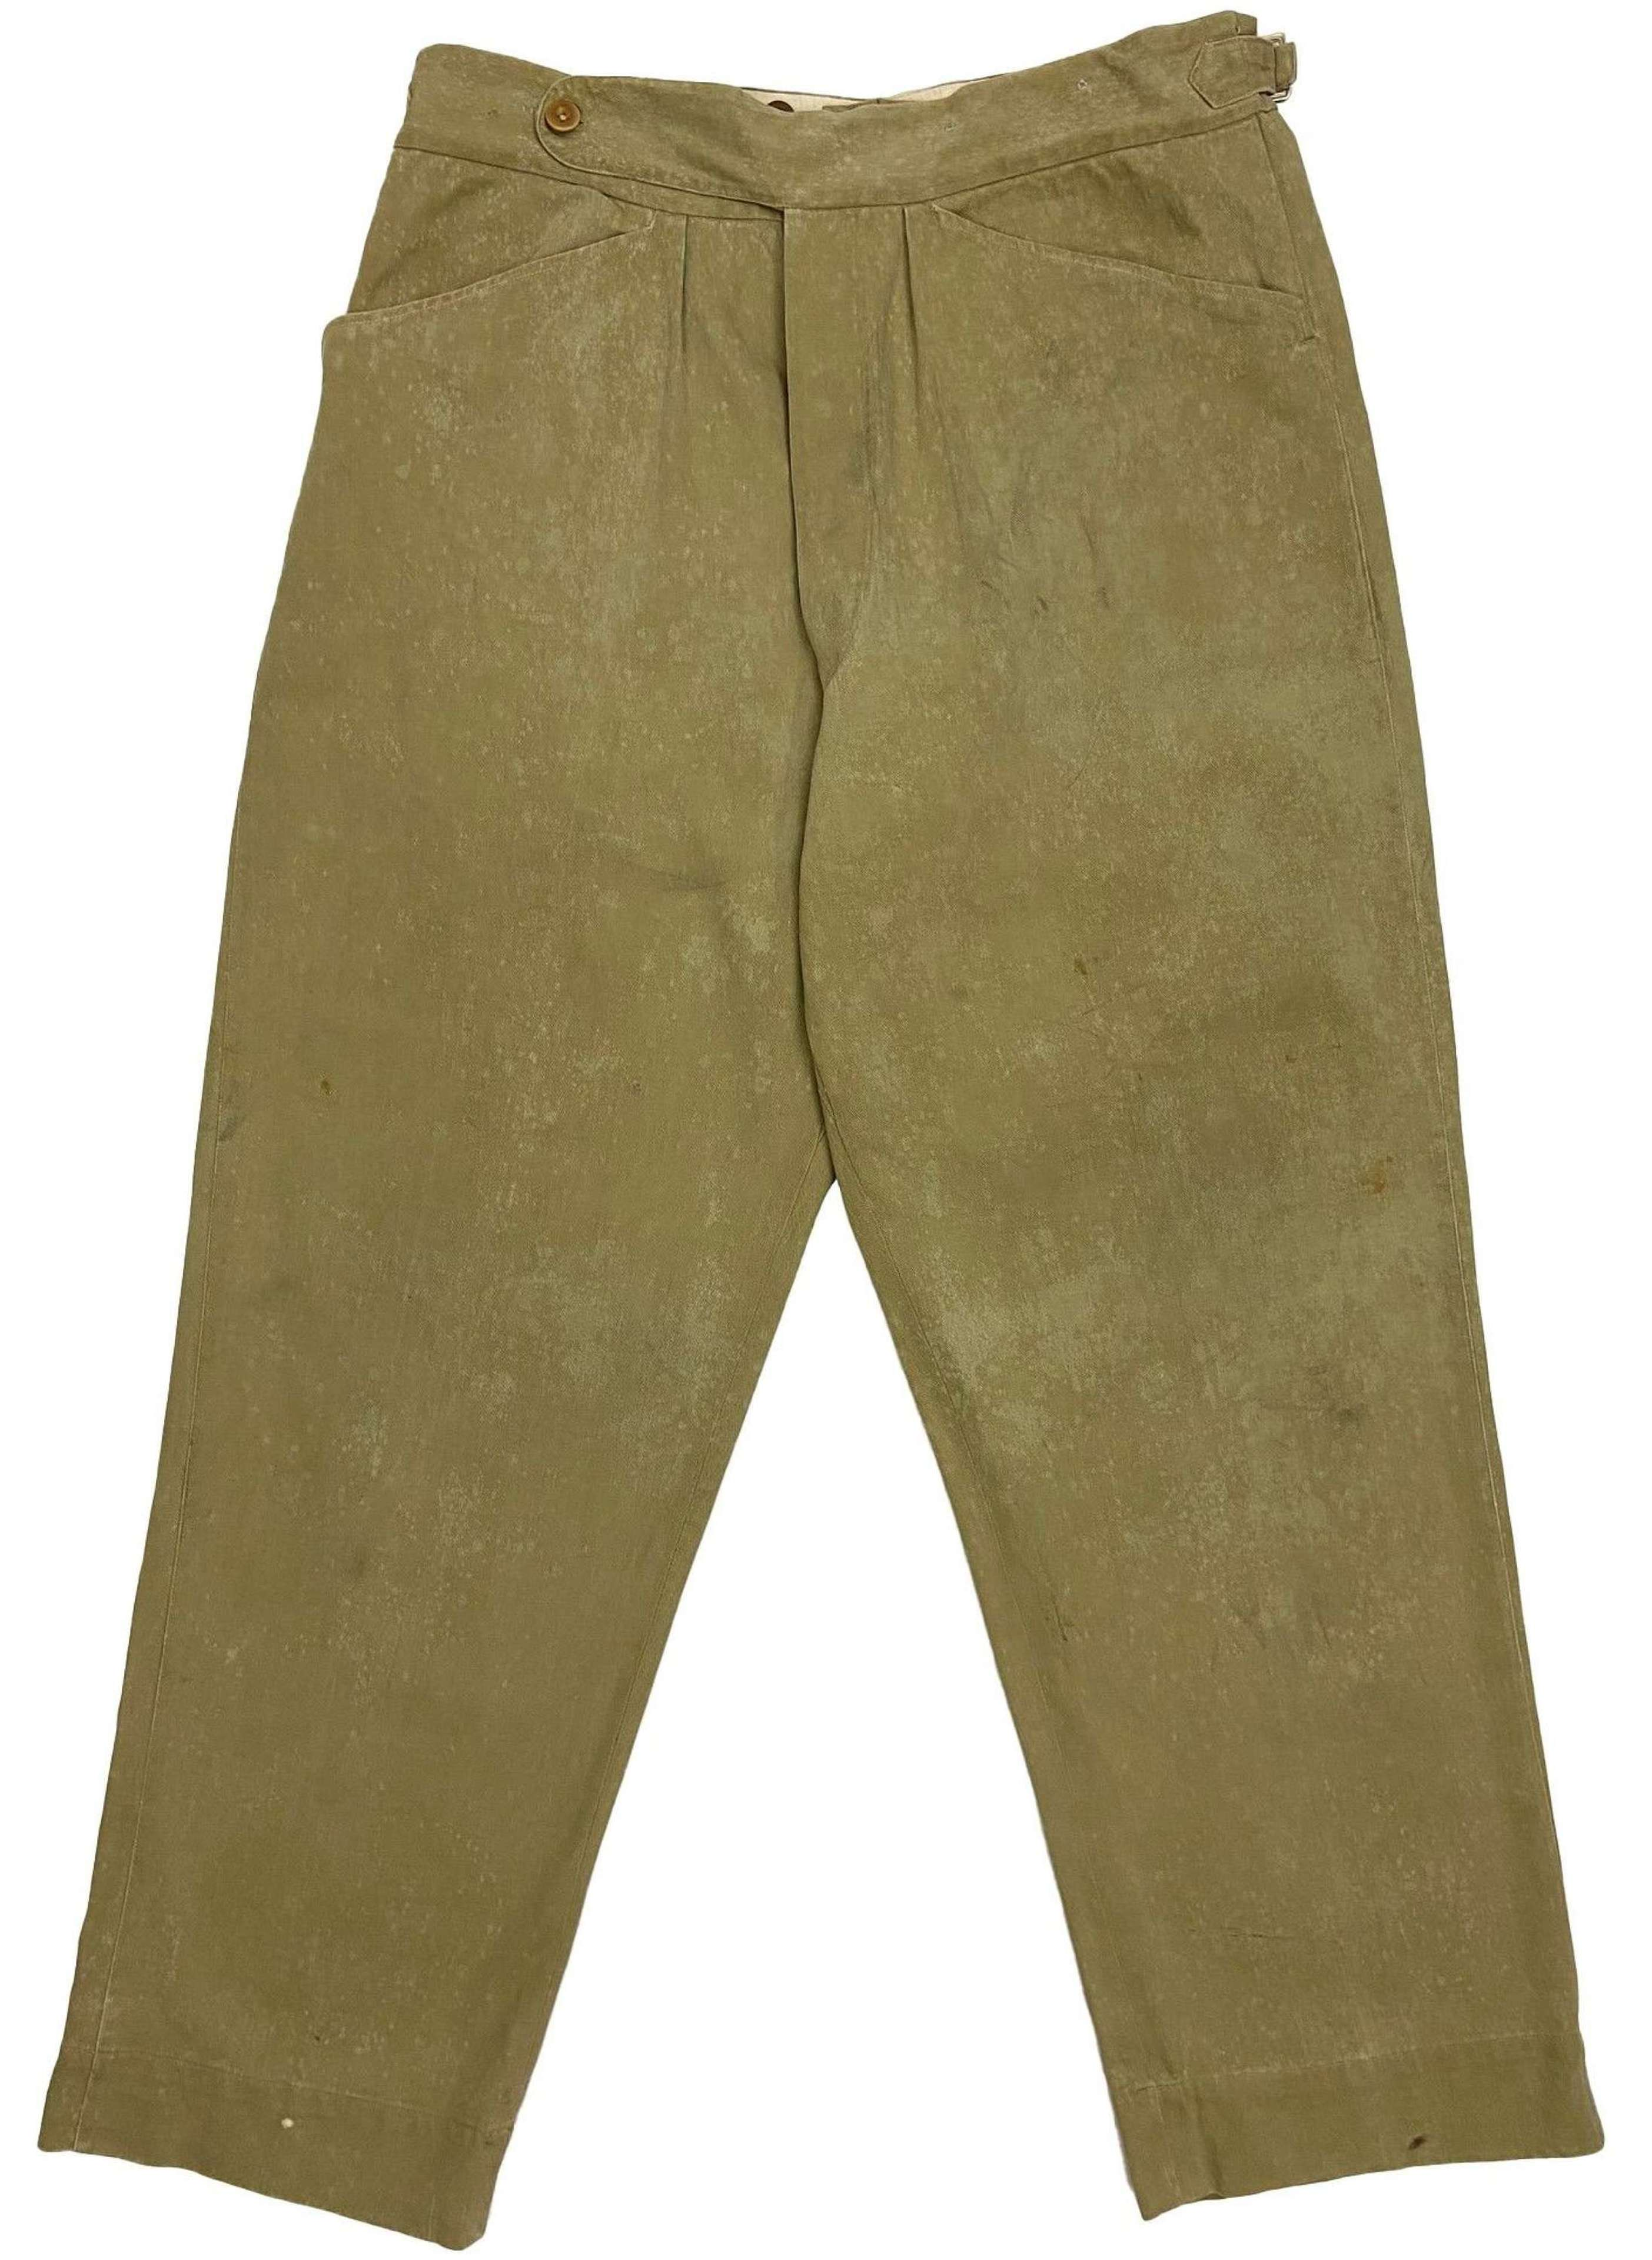 Original 1940s British Army Private Purchase Khaki Drill Trousers